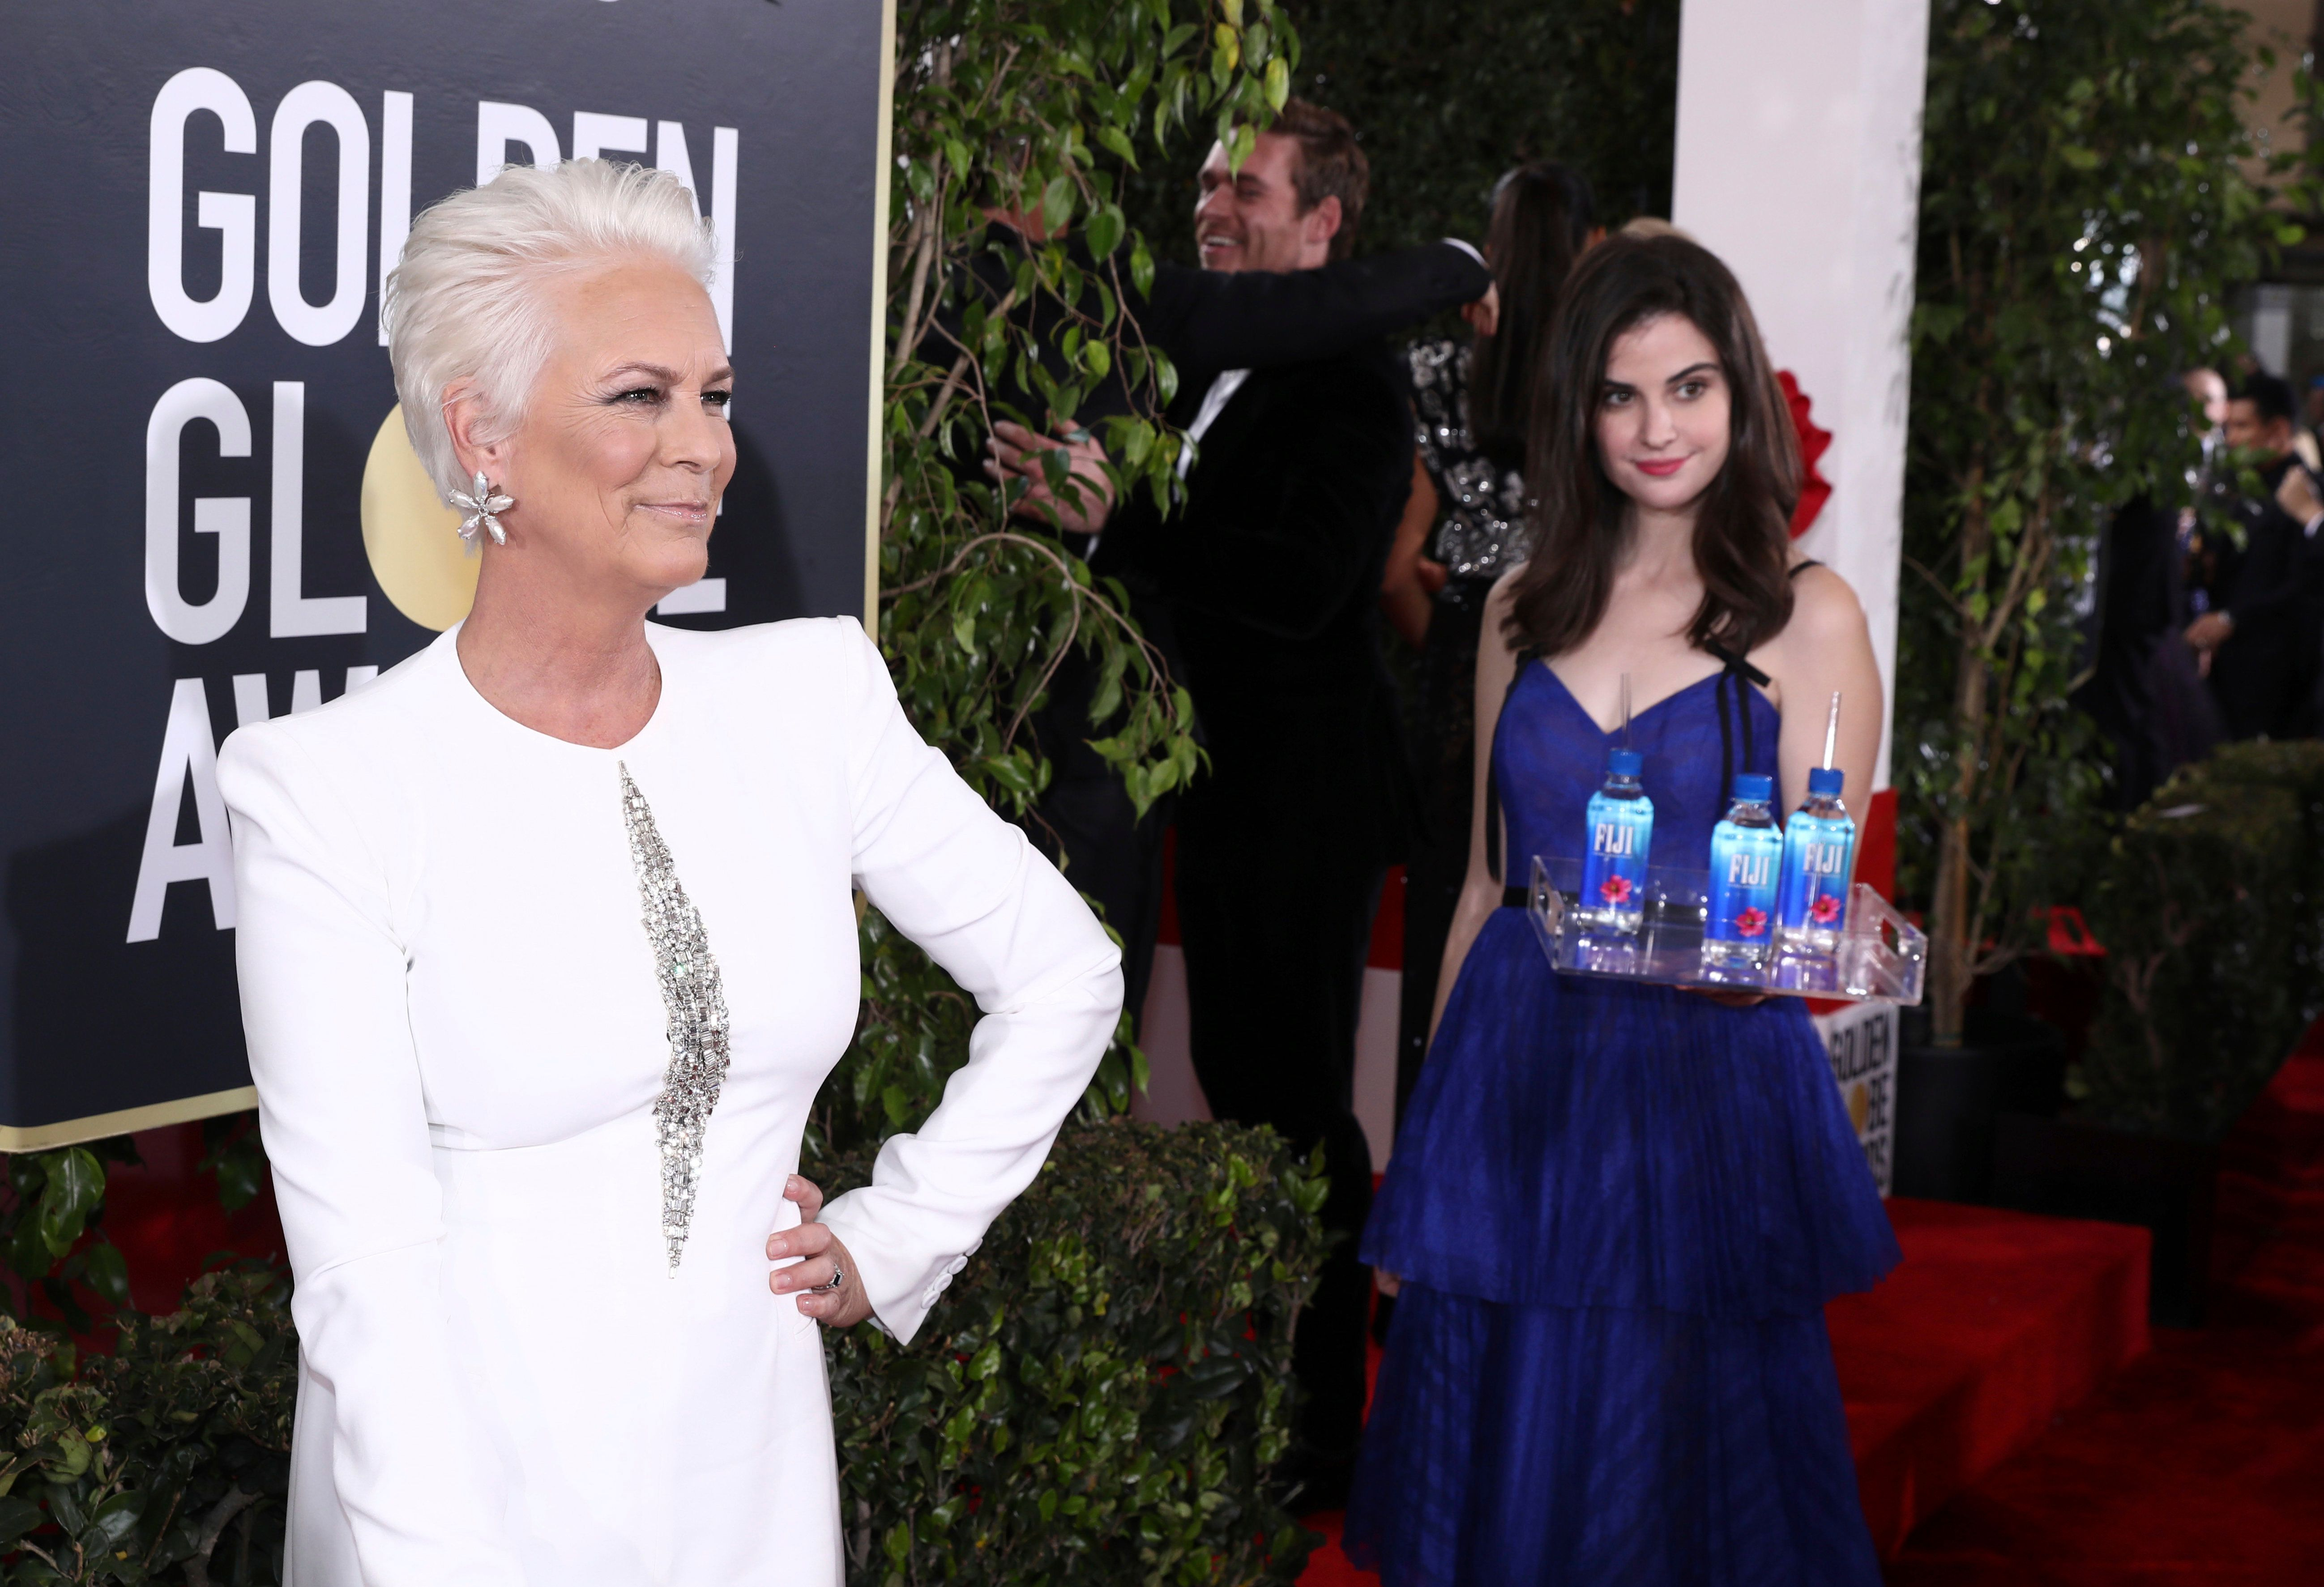 Jamie Lee Curtis Slams Golden Globes After 'Fiji Water Woman' Ends Up Going